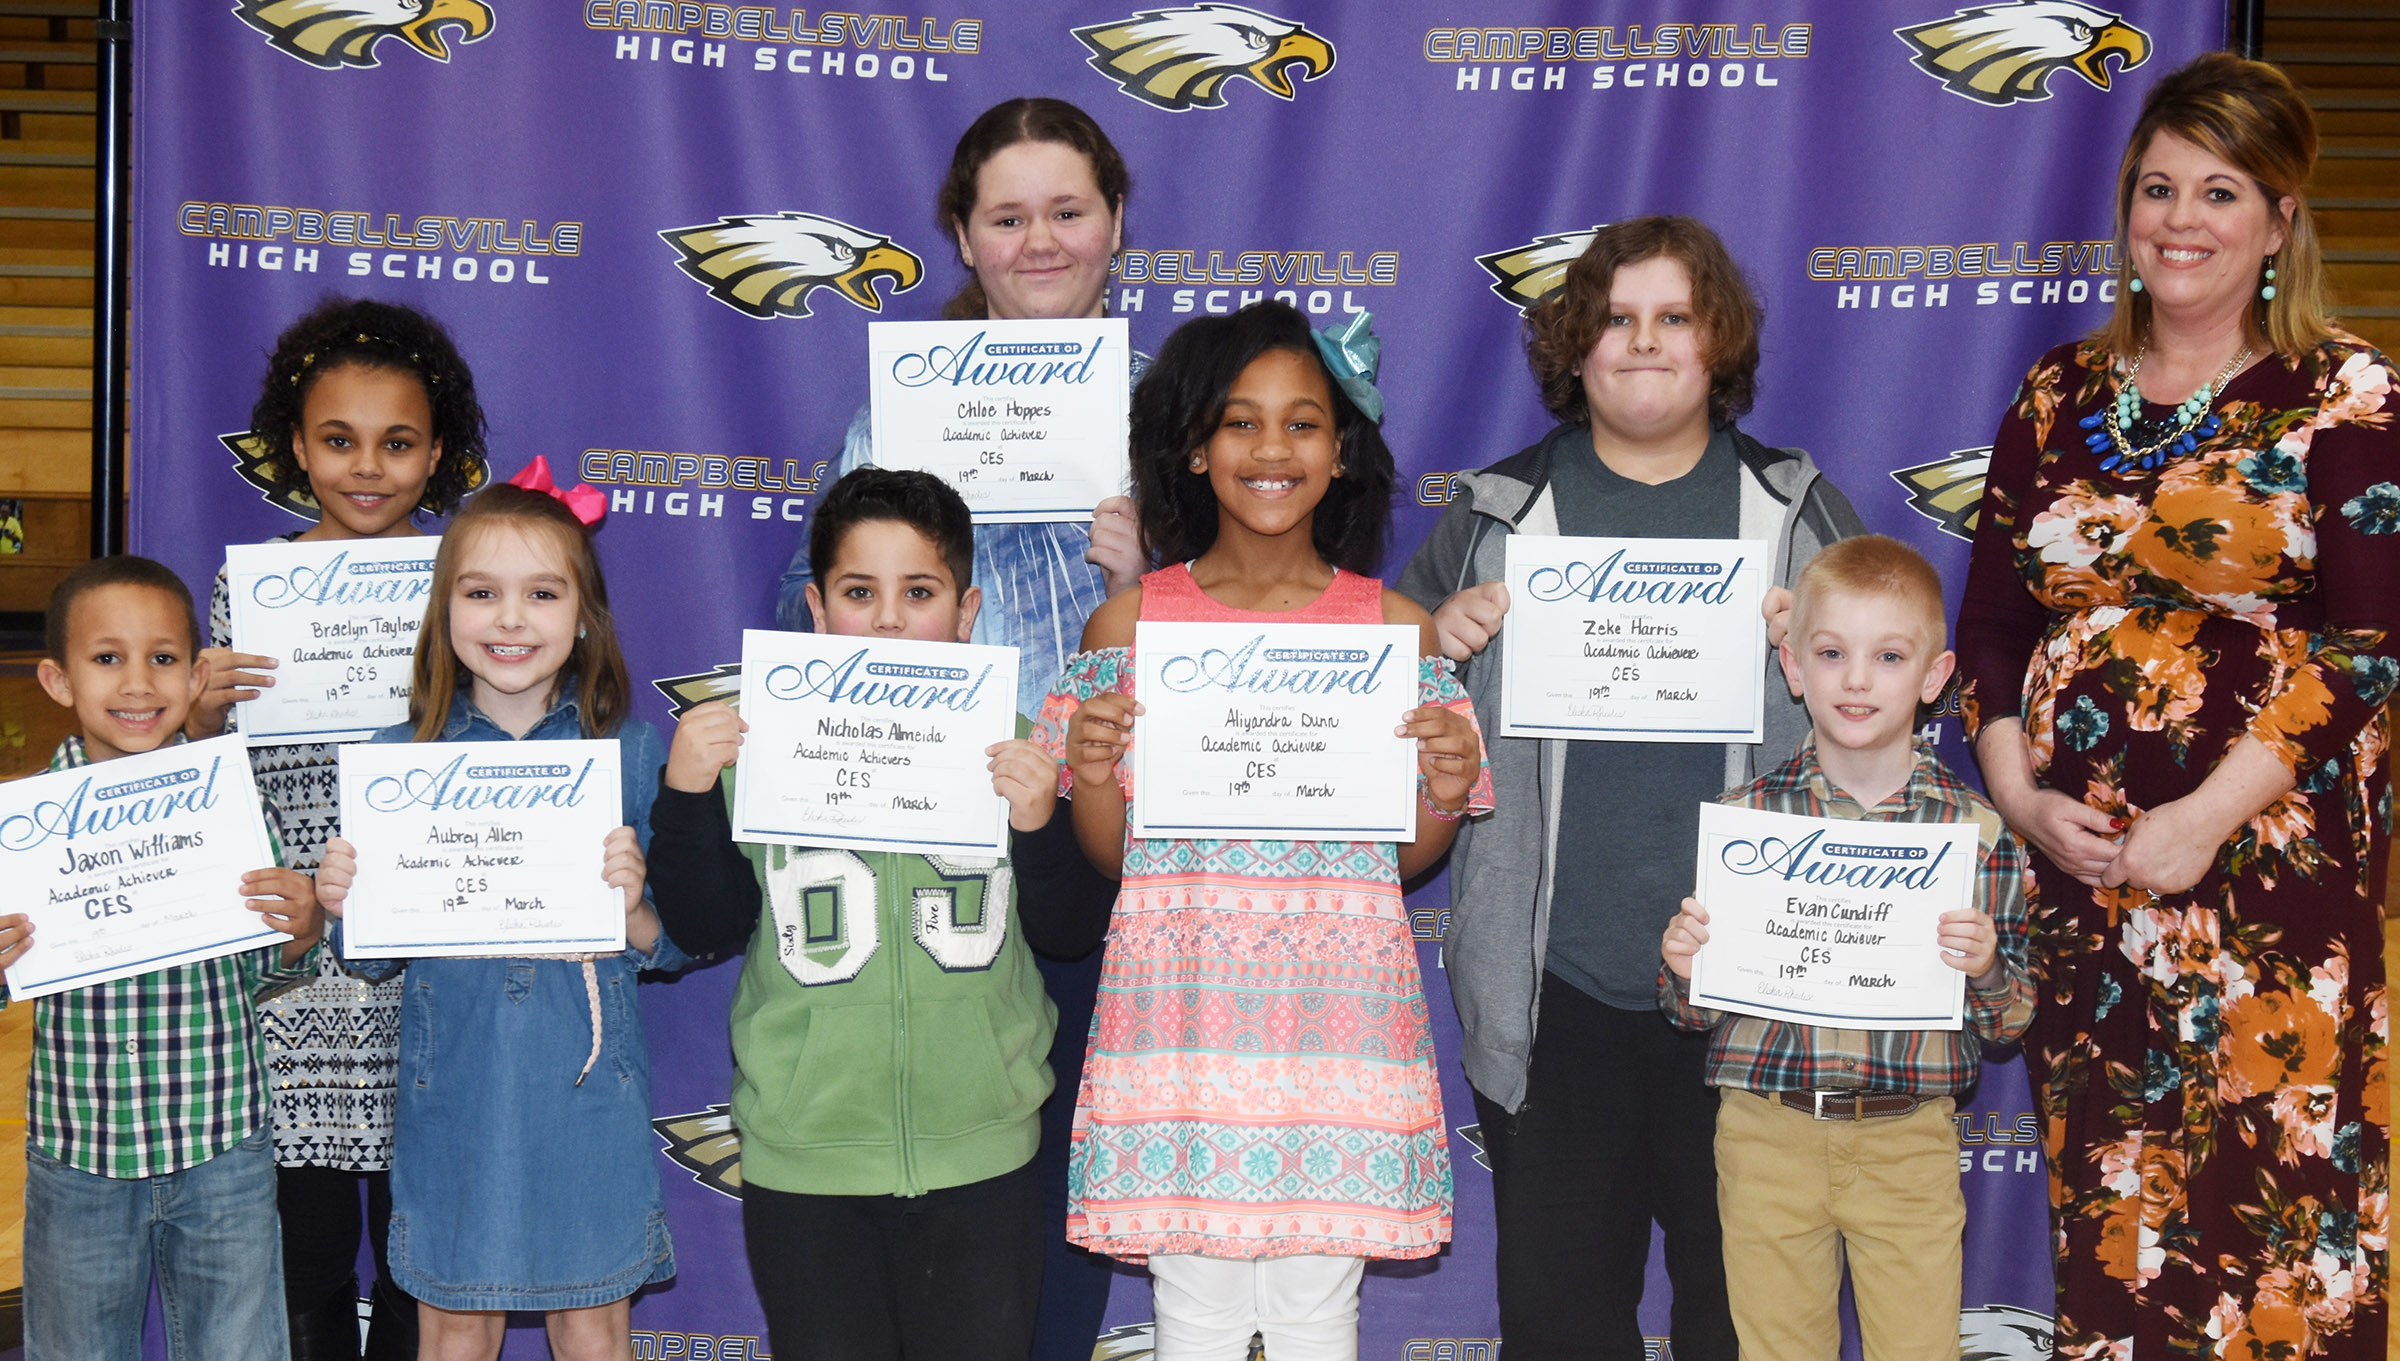 Campbellsville Elementary School recently announced its academic achievers for March. A boy and a girl from each grade level are named, and were honored at the Campbellsville Board of Education's special meeting on Monday, March 19. From left, front, are kindergartener Jaxon Williams, first-grader Aubrey Allen, second-graders Nicholas Almeida and Aliy Dunn, third-grader Evan Cundiff and CES Principal Elisha Rhodes. Back, third-grader Braelyn Taylor and fifth-graders Chloe Hoppes and Zeke Harris. Absent from the photo are kindergartener Fallyn Smith, first-grader Ayden Andrew and fourth-graders Gracie Pendleton and Devin Underwood.